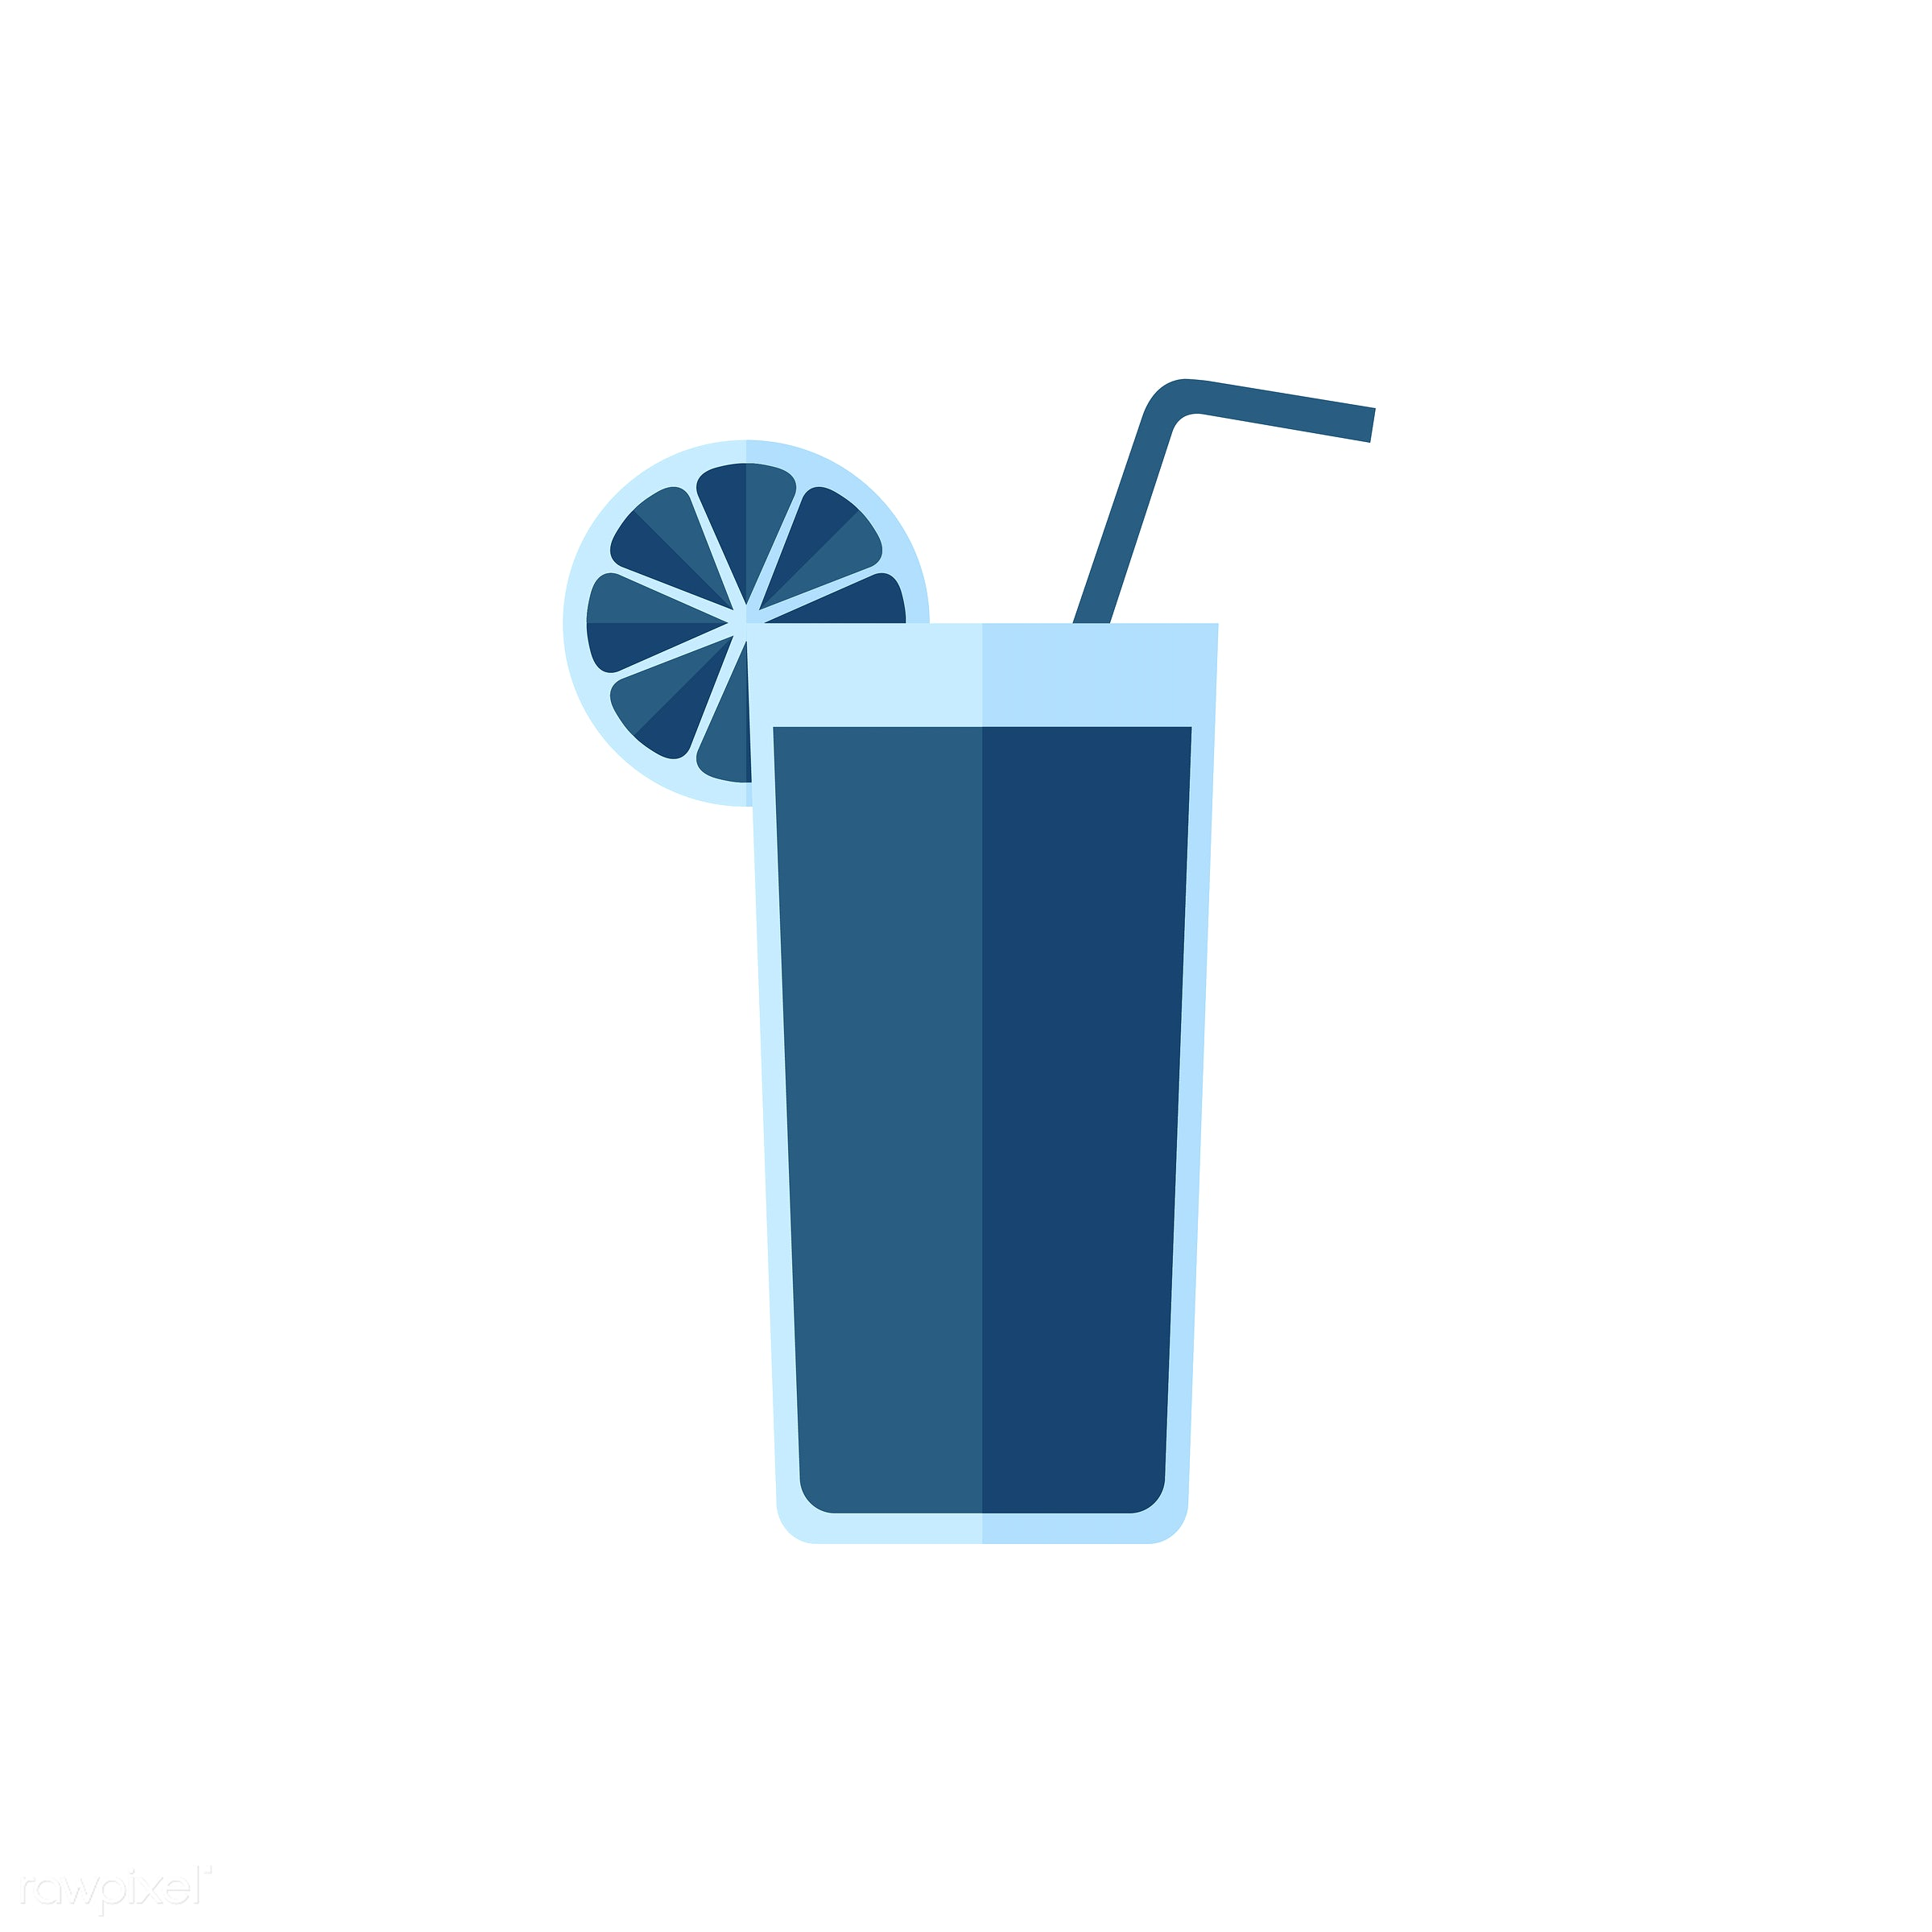 Blue orange juice vector - vector, graphic, illustration, icon, symbol, colorful, cute, drink, beverage, water, orange juice...